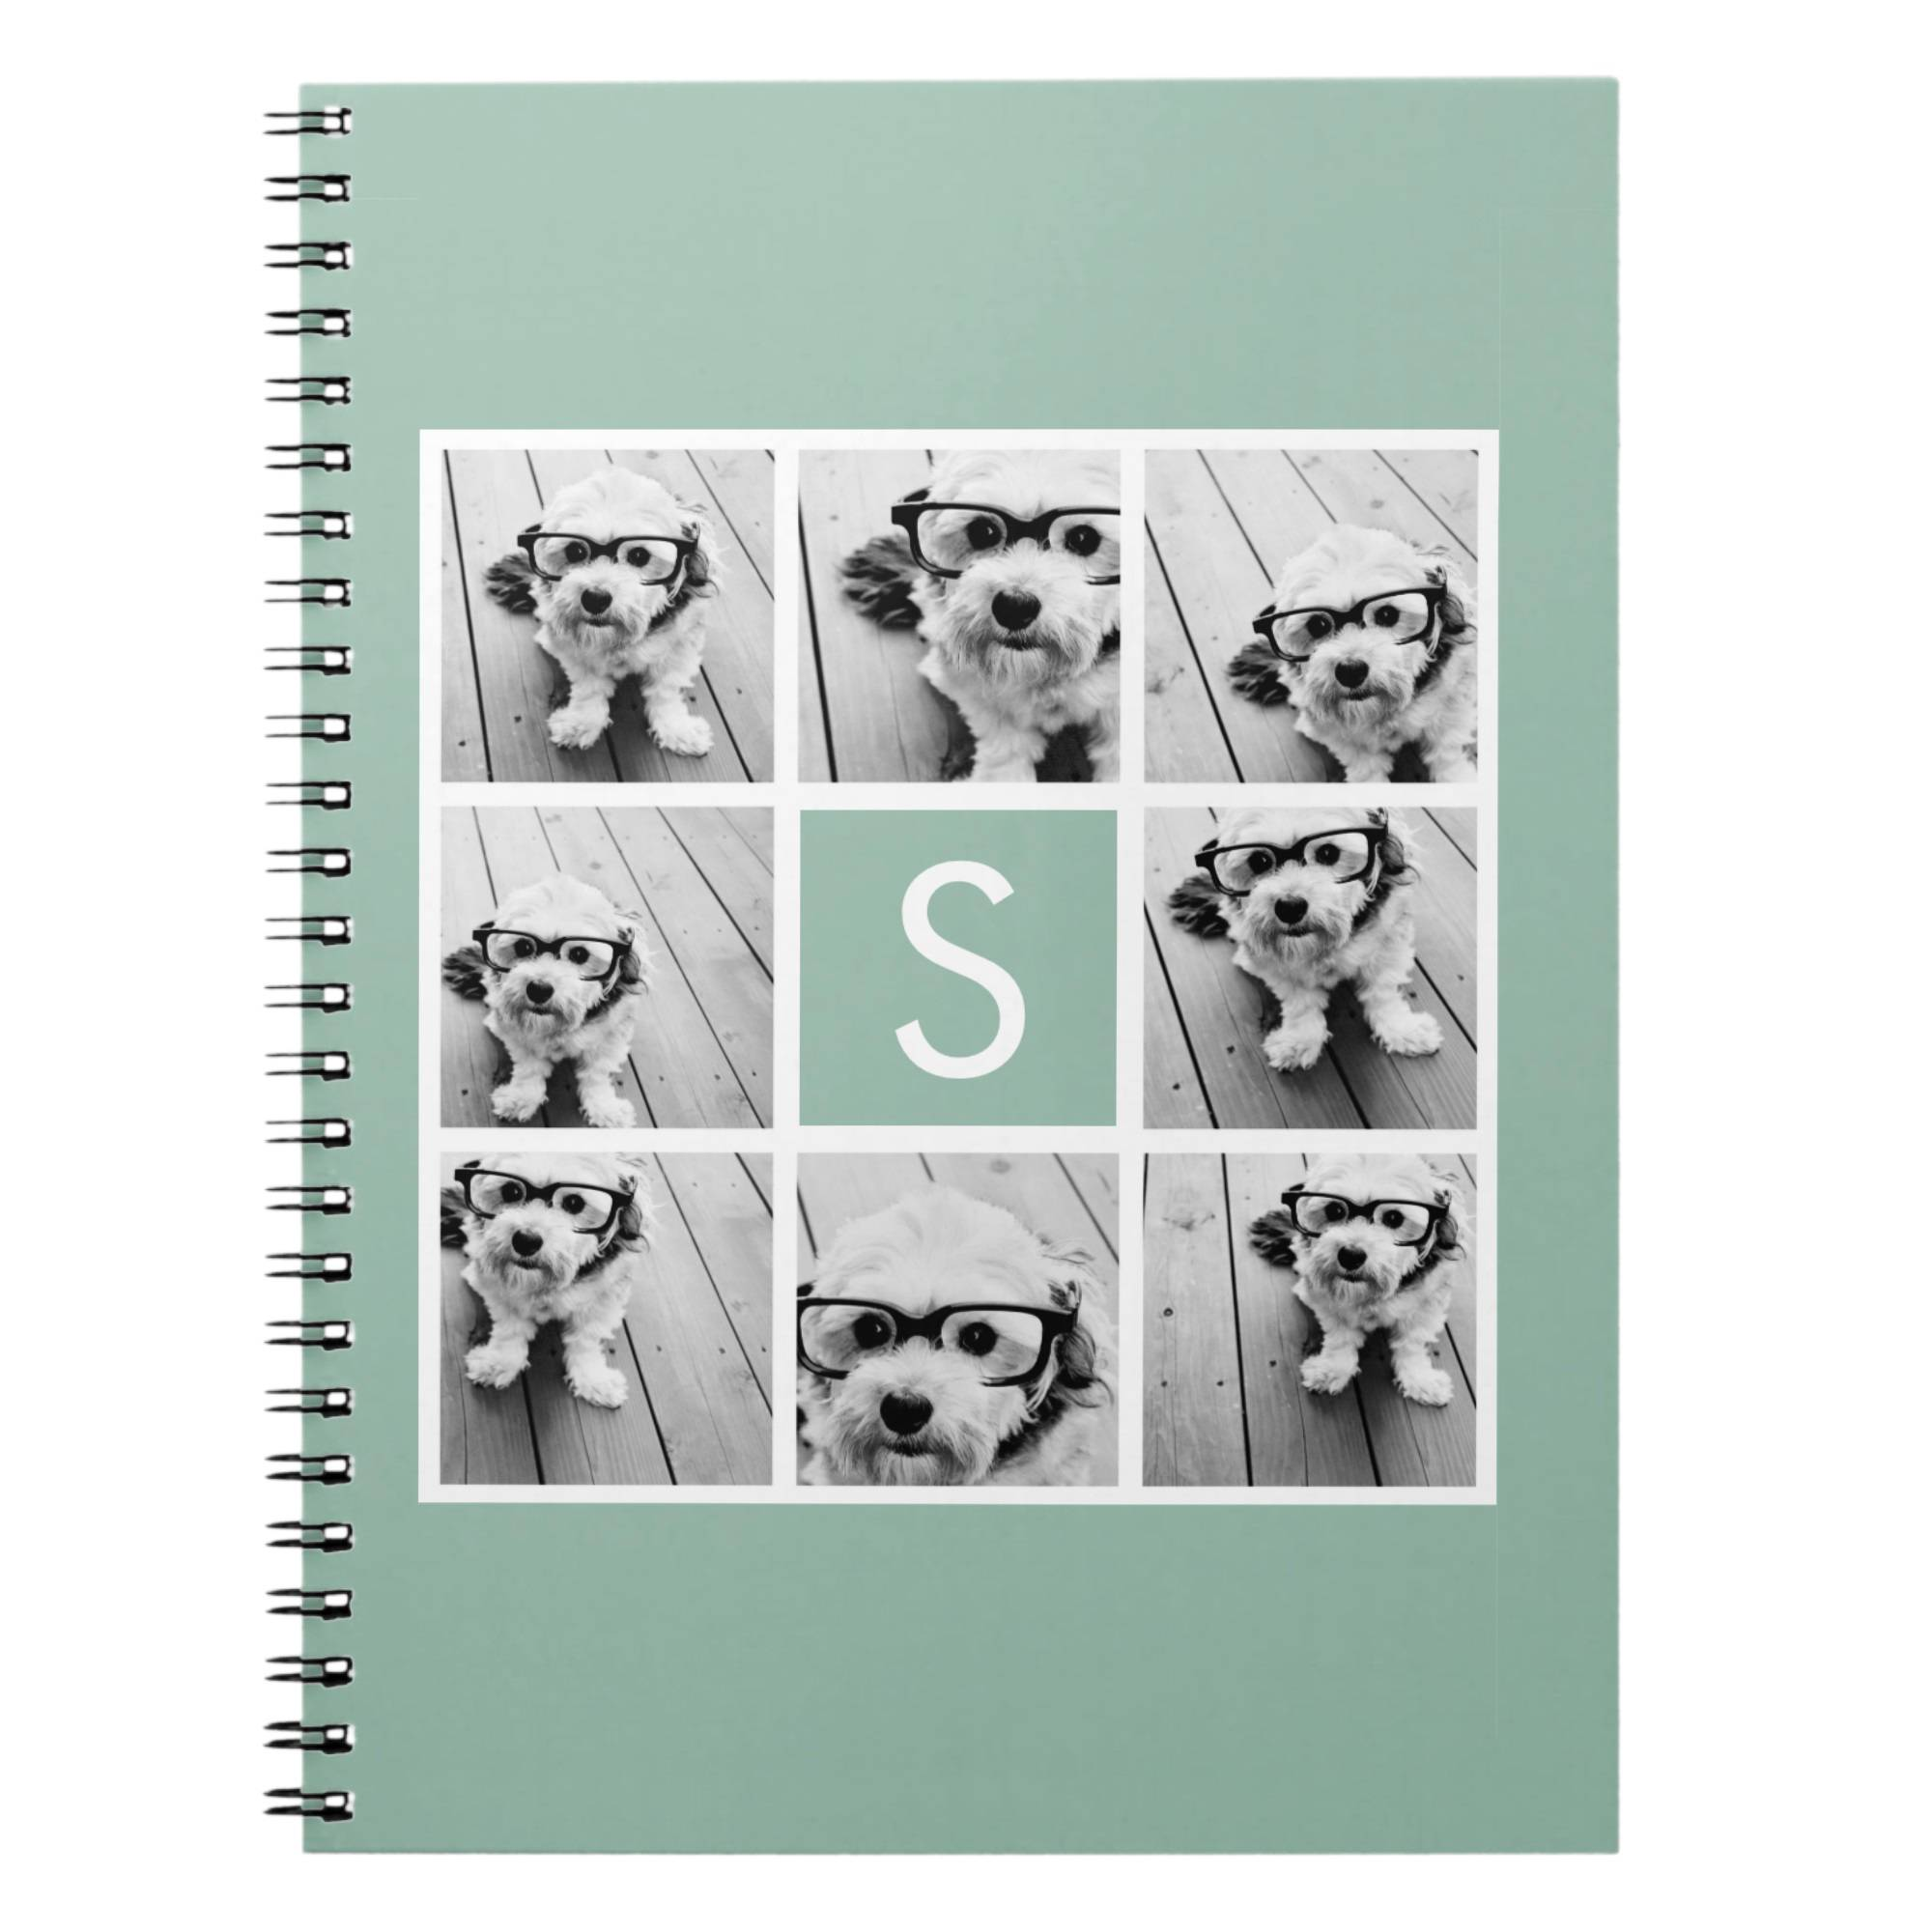 Monogrammable notebooks for back-to-school come in a variety of cool designs including geometrics and animal prints.  Kids can also design their own by uploading photo collages and adding type.